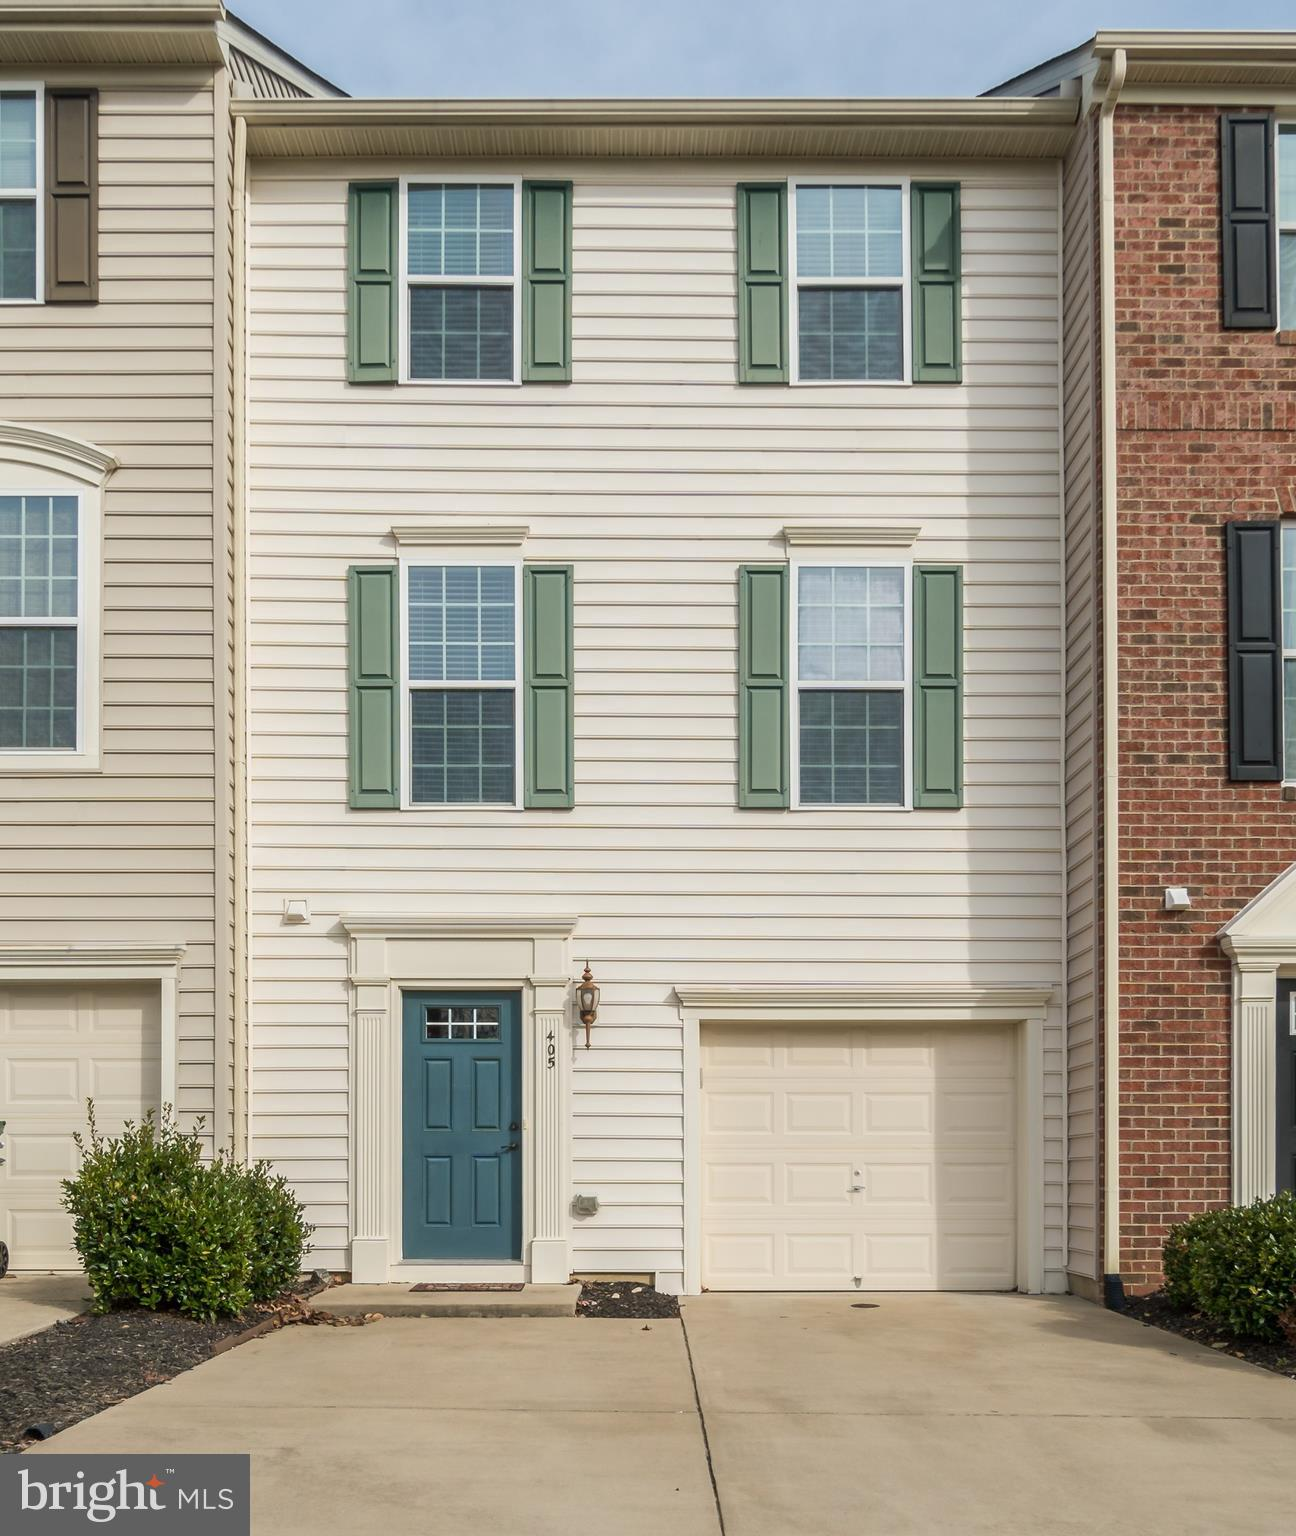 PRISTINE THREE LEVEL TOWN HOME IN SUPER CONVENIENT LOCATION!  GREAT OPEN FLOOR PLAN, LARGE MASTER BE